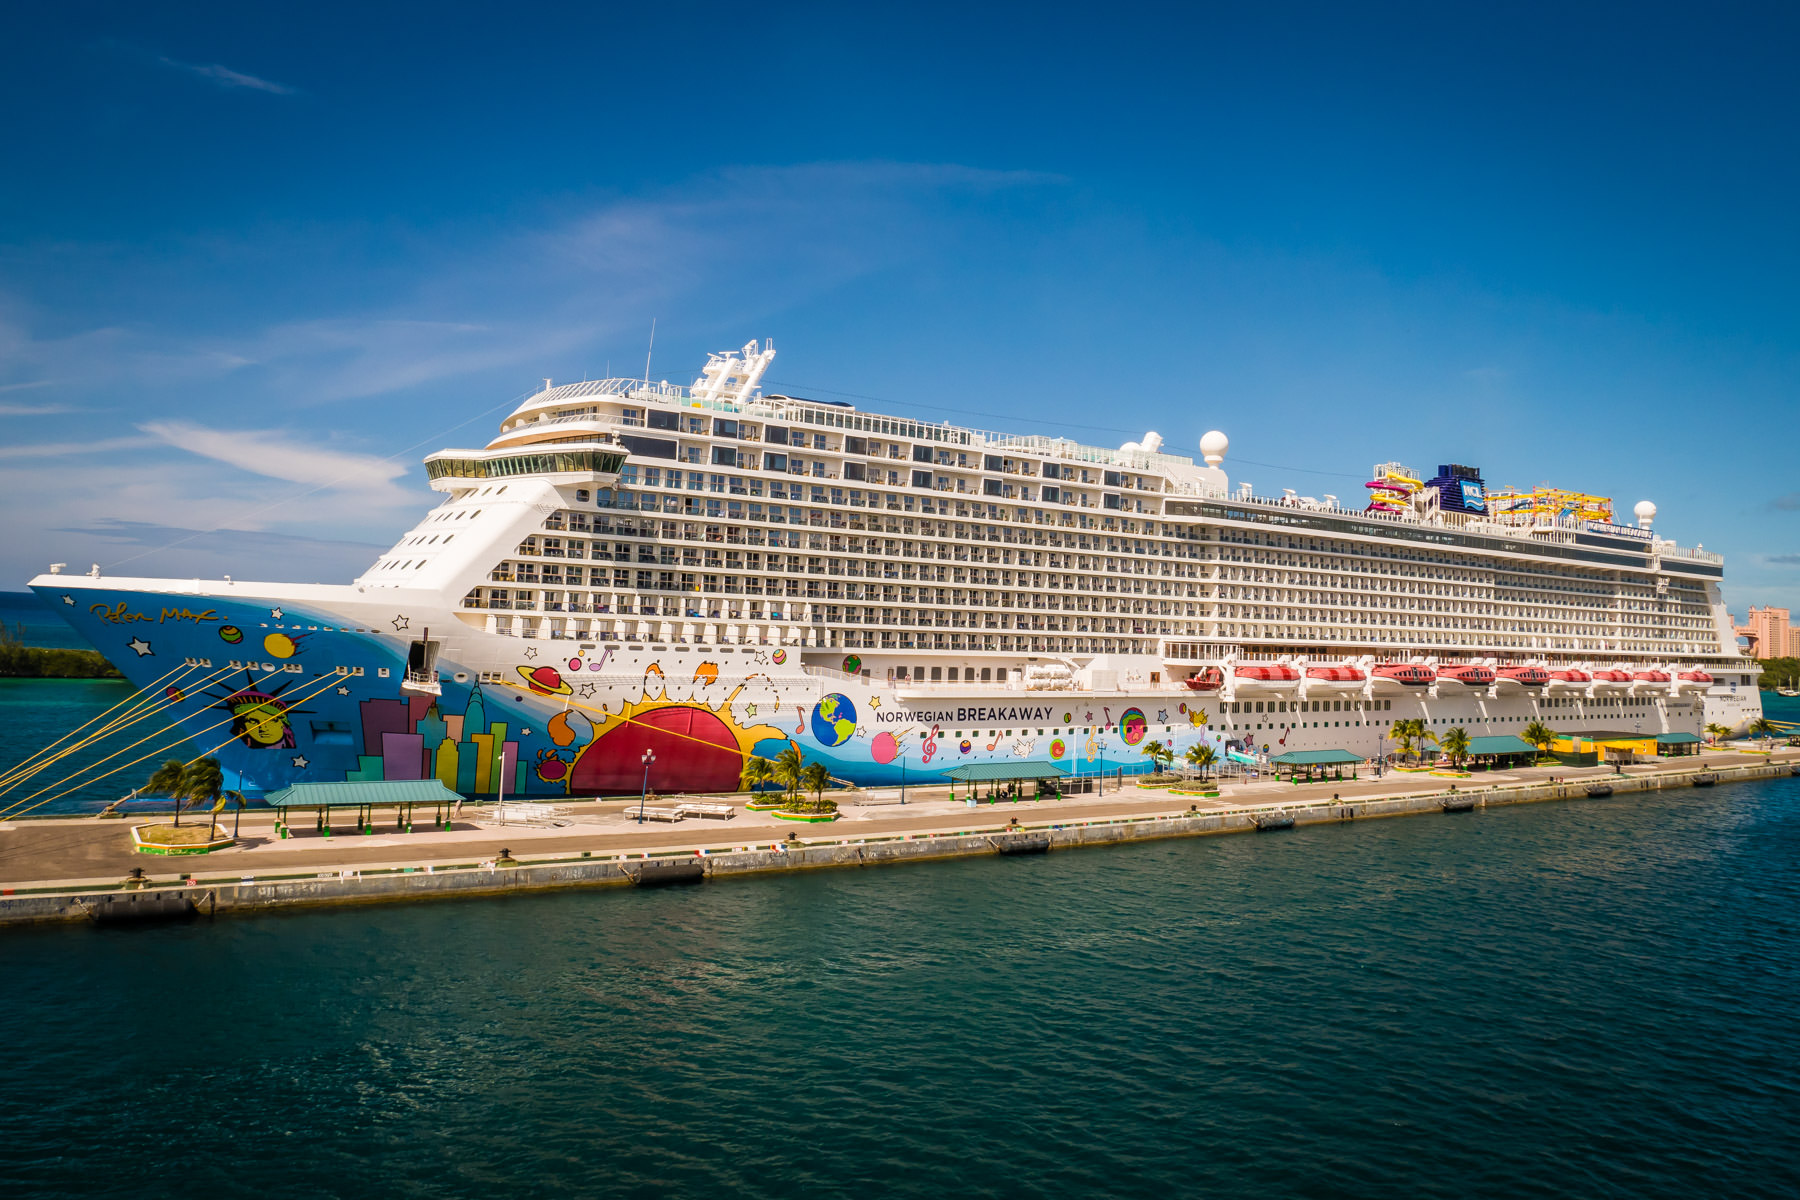 Norwegian Cruise Lines' 325 meter (1,069 ft) long cruise ship Norwegian Breakaway, docked in Nassau, Bahamas.